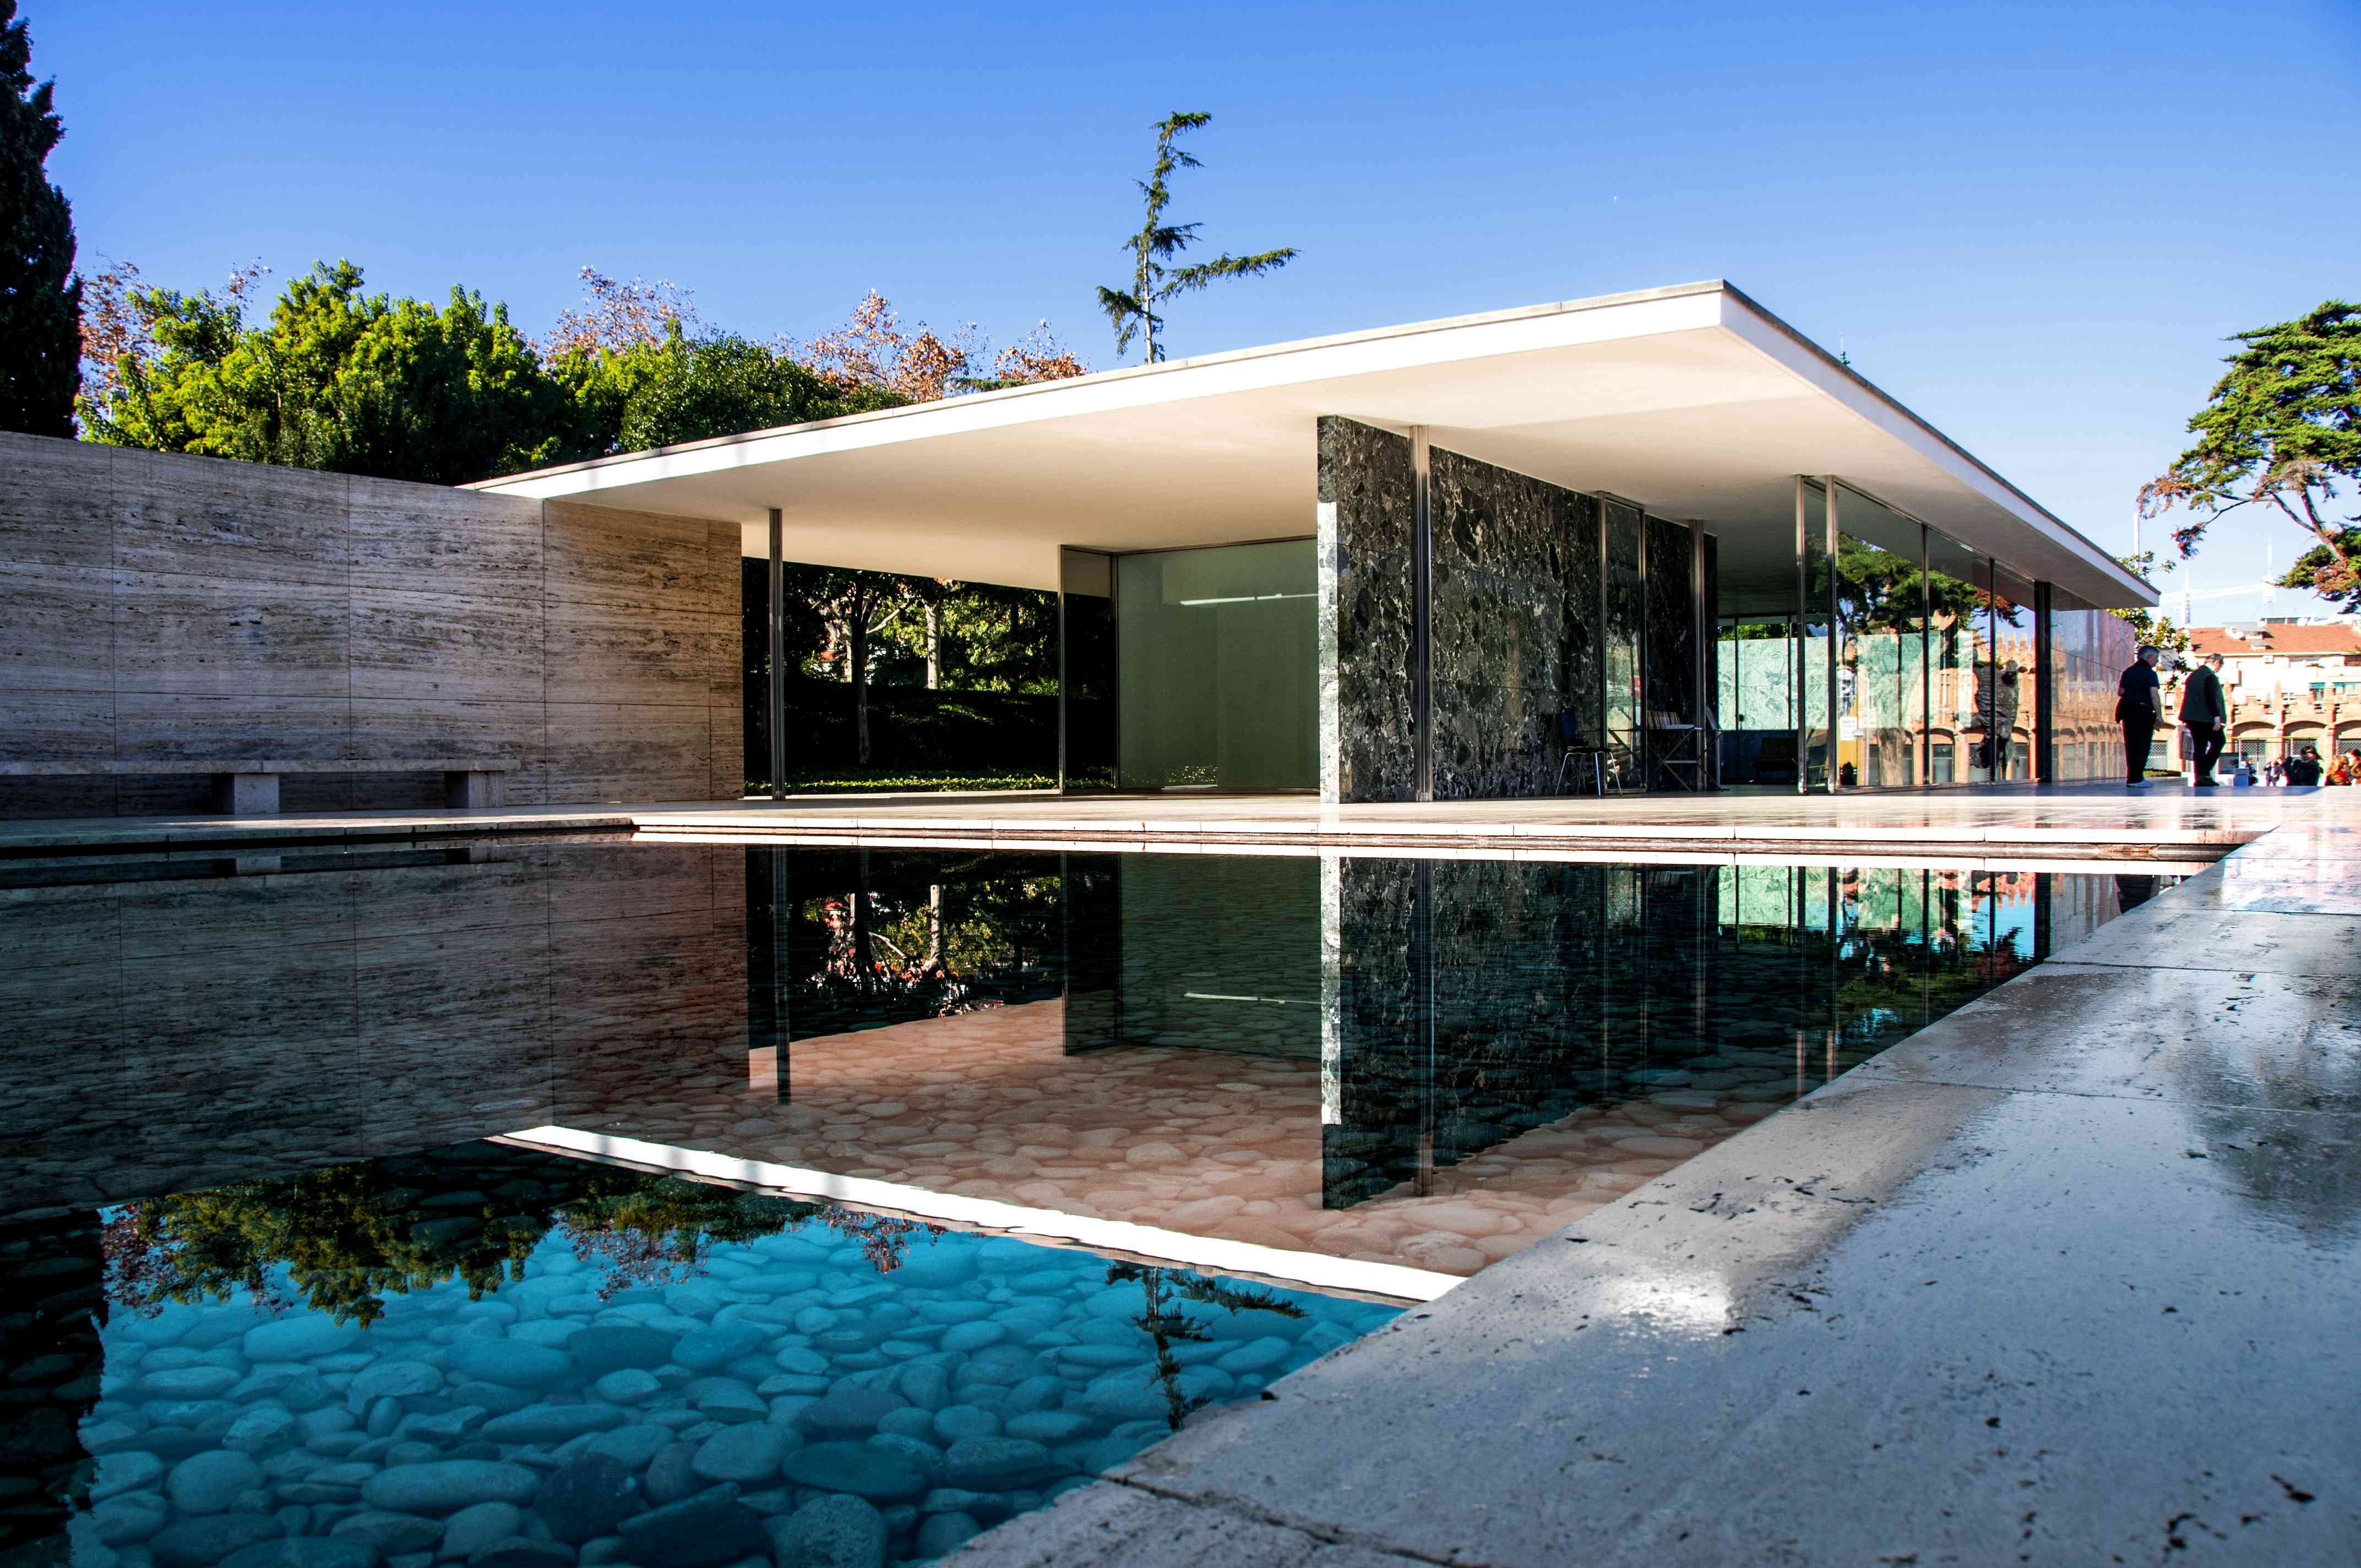 one story, flat-roofed minimalist building with a still pond